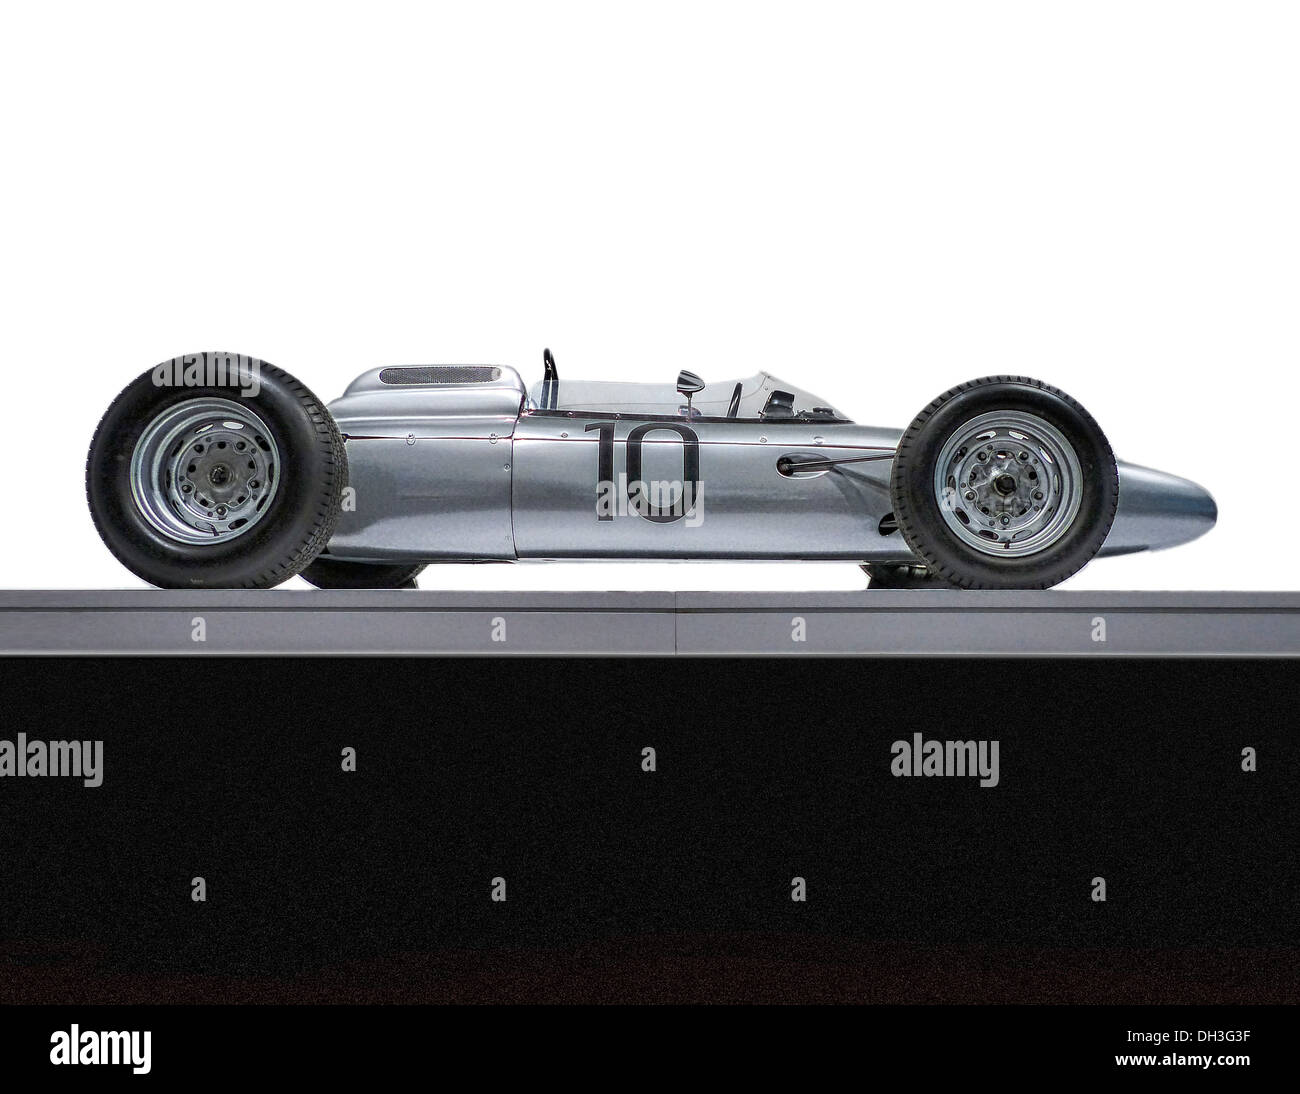 A side on view of a 1962 Porsche Type 804 Formula One race car. - Stock Image